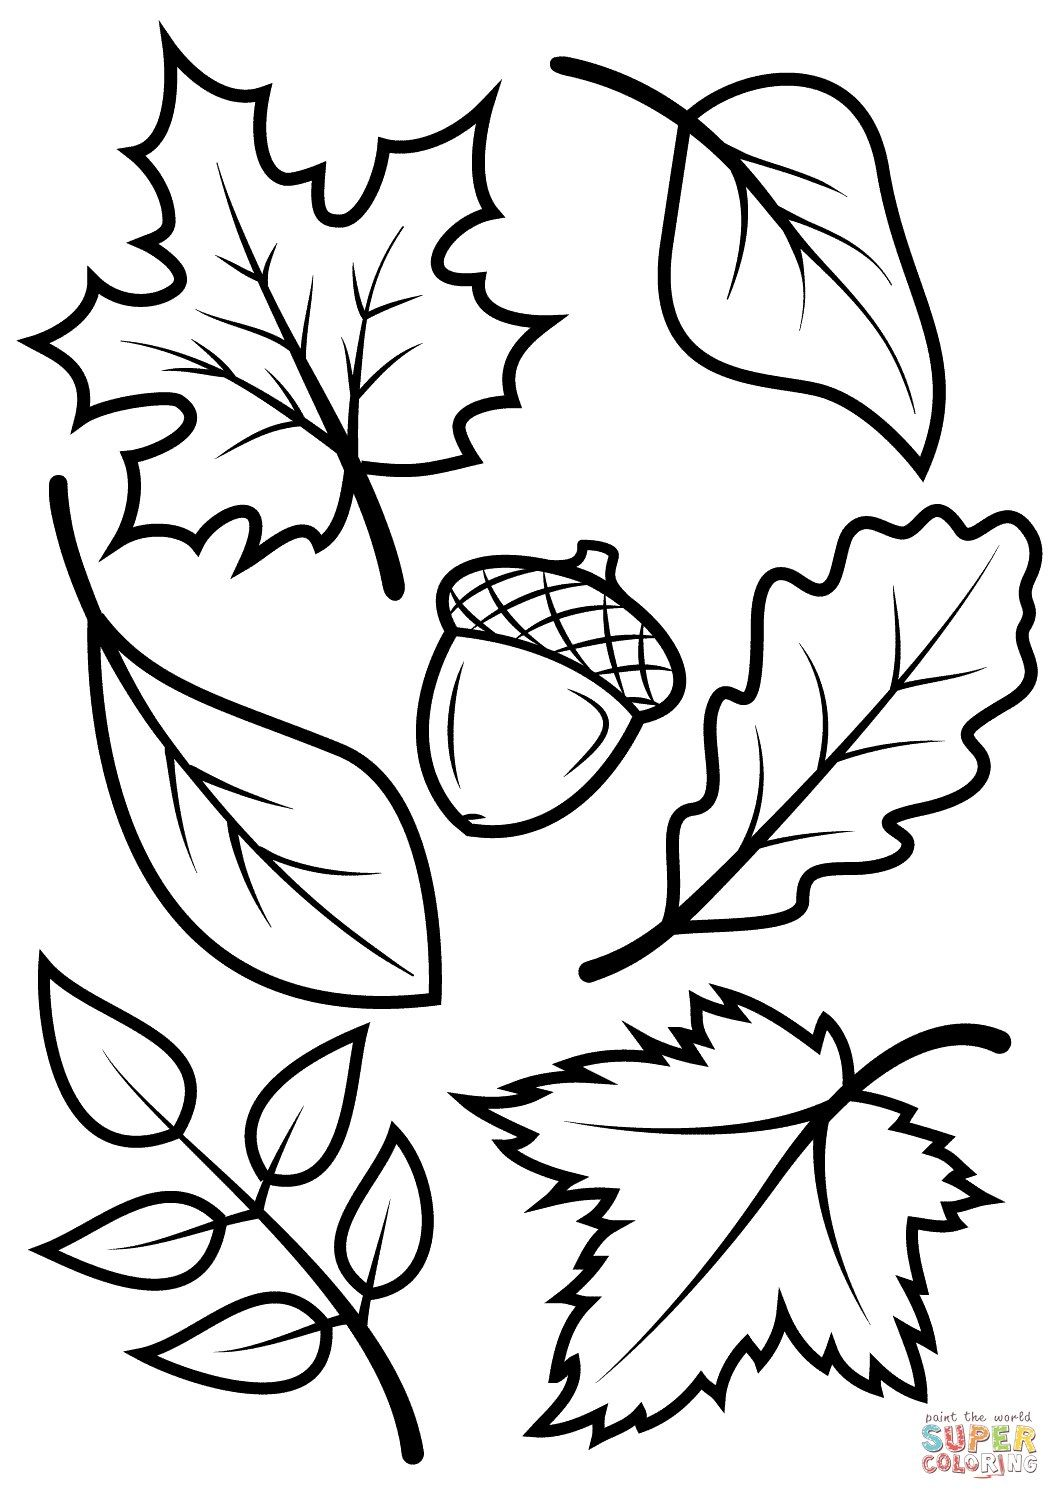 22 Exclusive Picture Of Fall Coloring Pages Davemelillo Com Fall Leaves Coloring Pages Fall Coloring Sheets Leaf Coloring Page